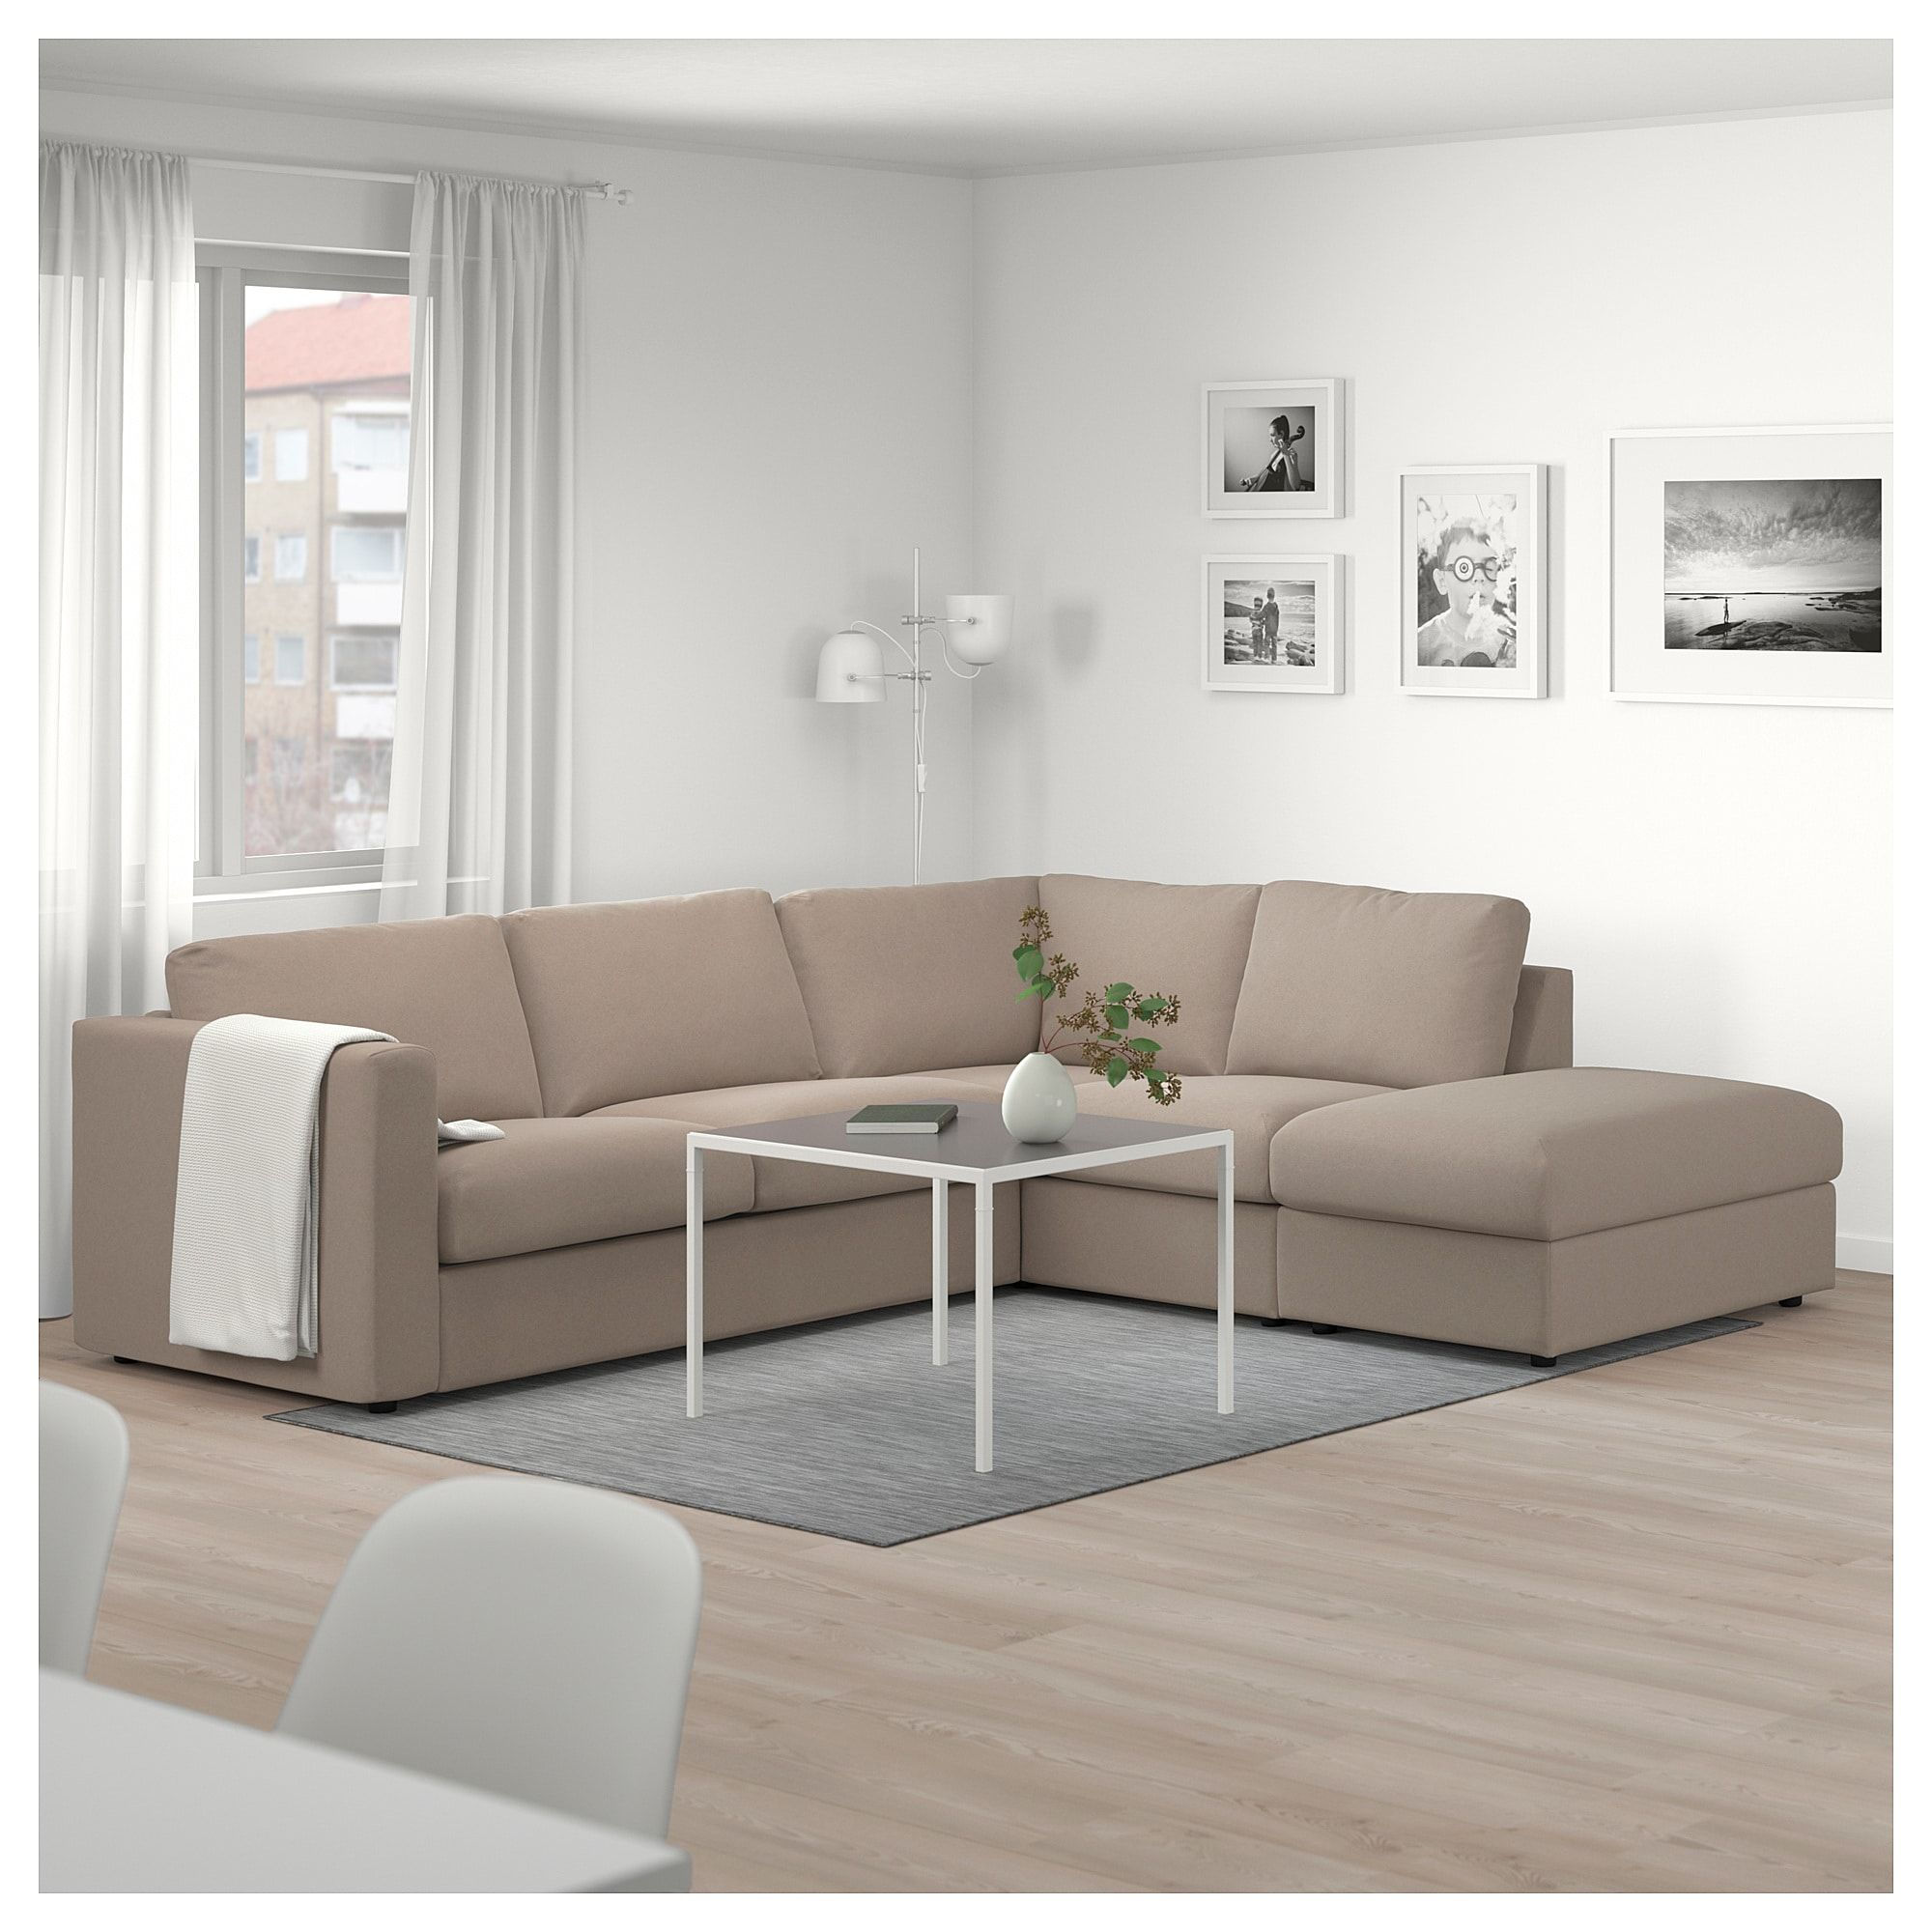 furniture  home furnishings  find your inspiration